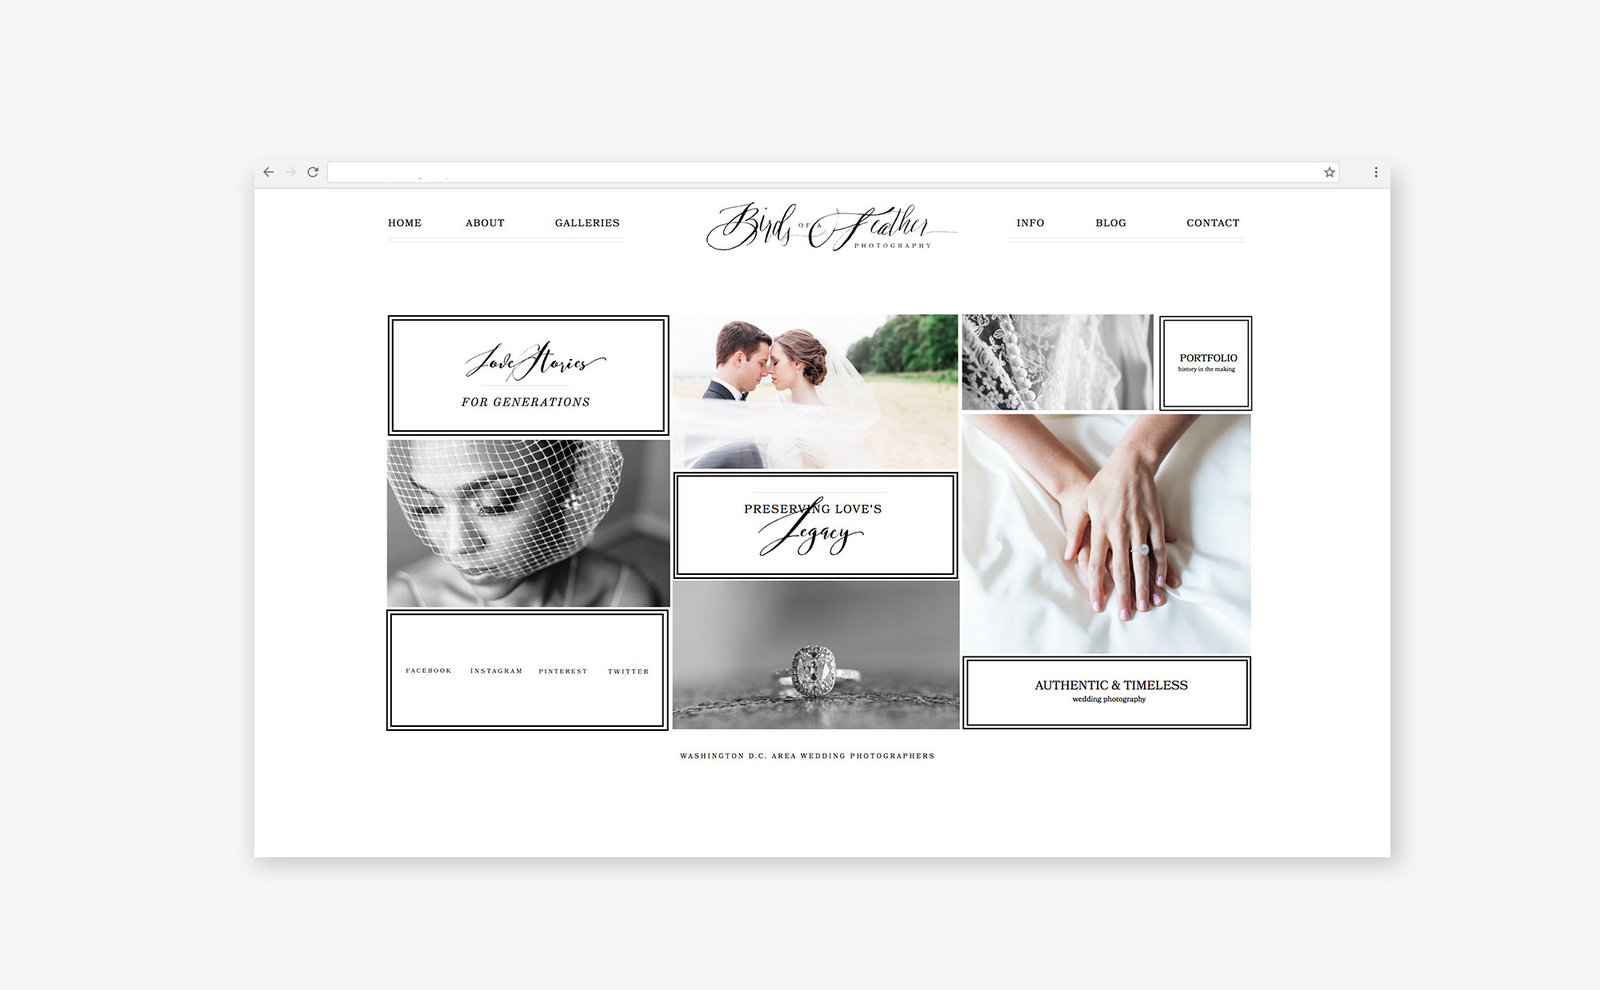 branding-for-photographers-web-design-boaf-01